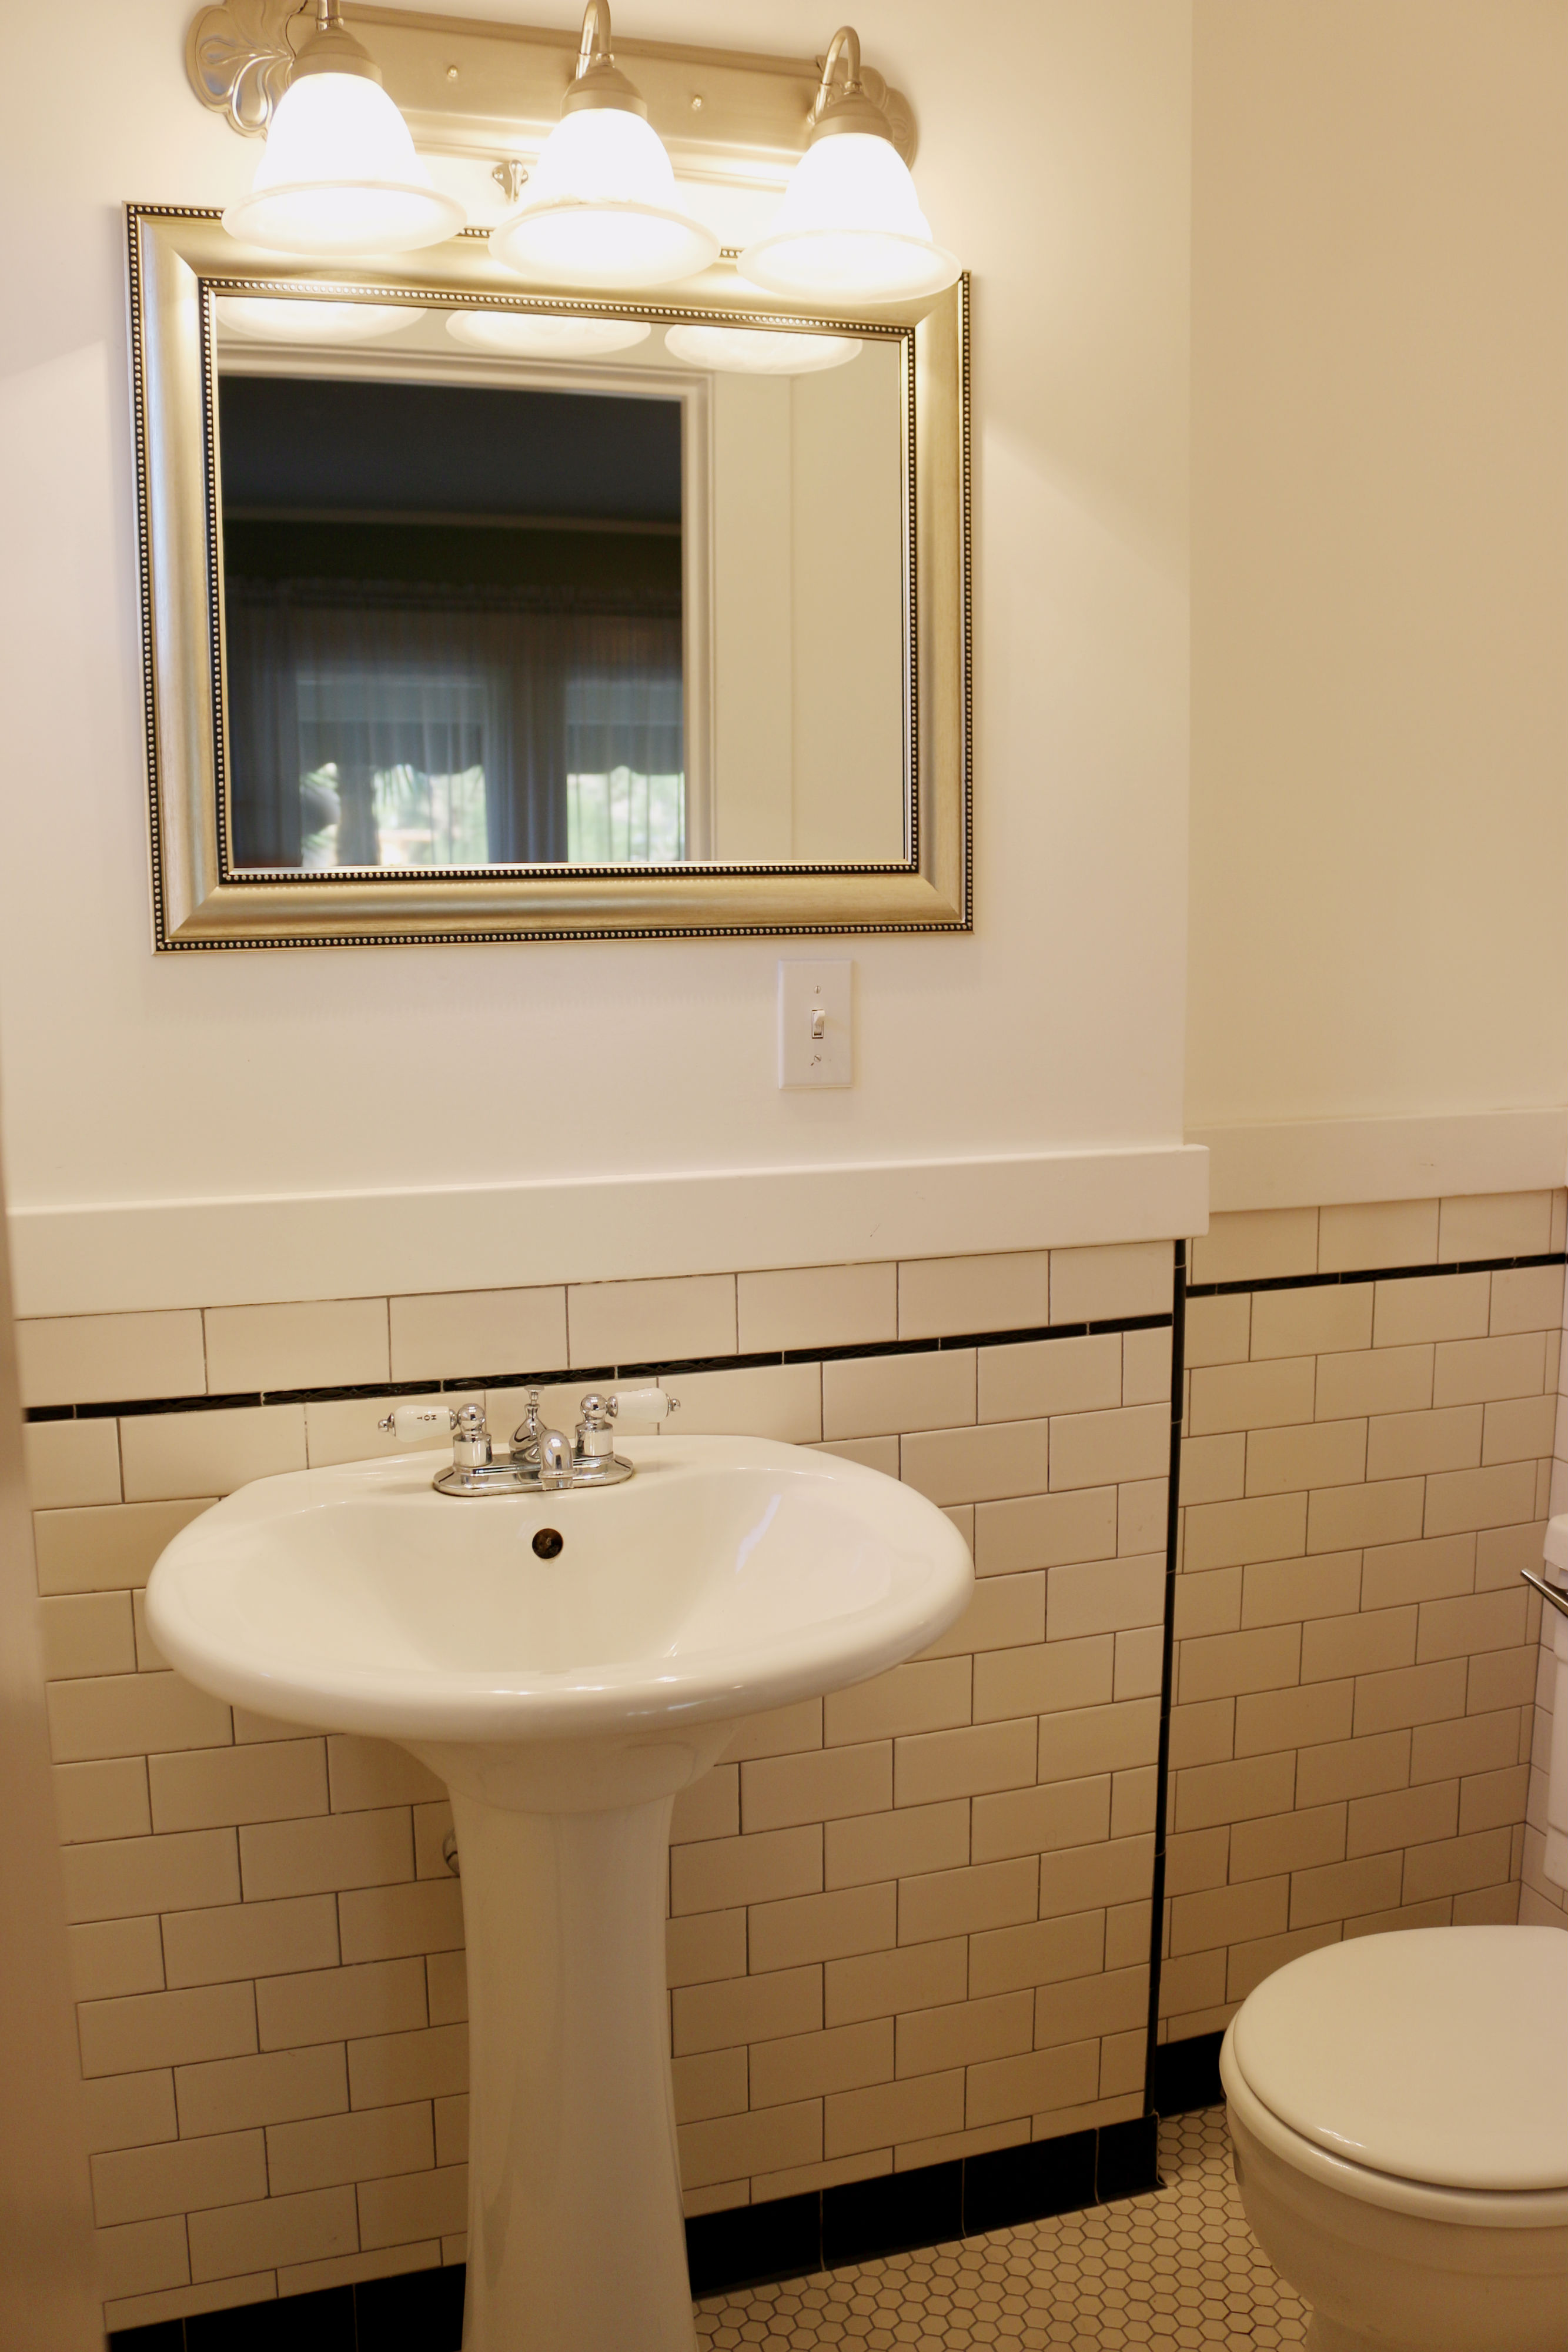 Remodeled Half Bath In Front Bedroom With Subway Tile And Pedestal Sink.